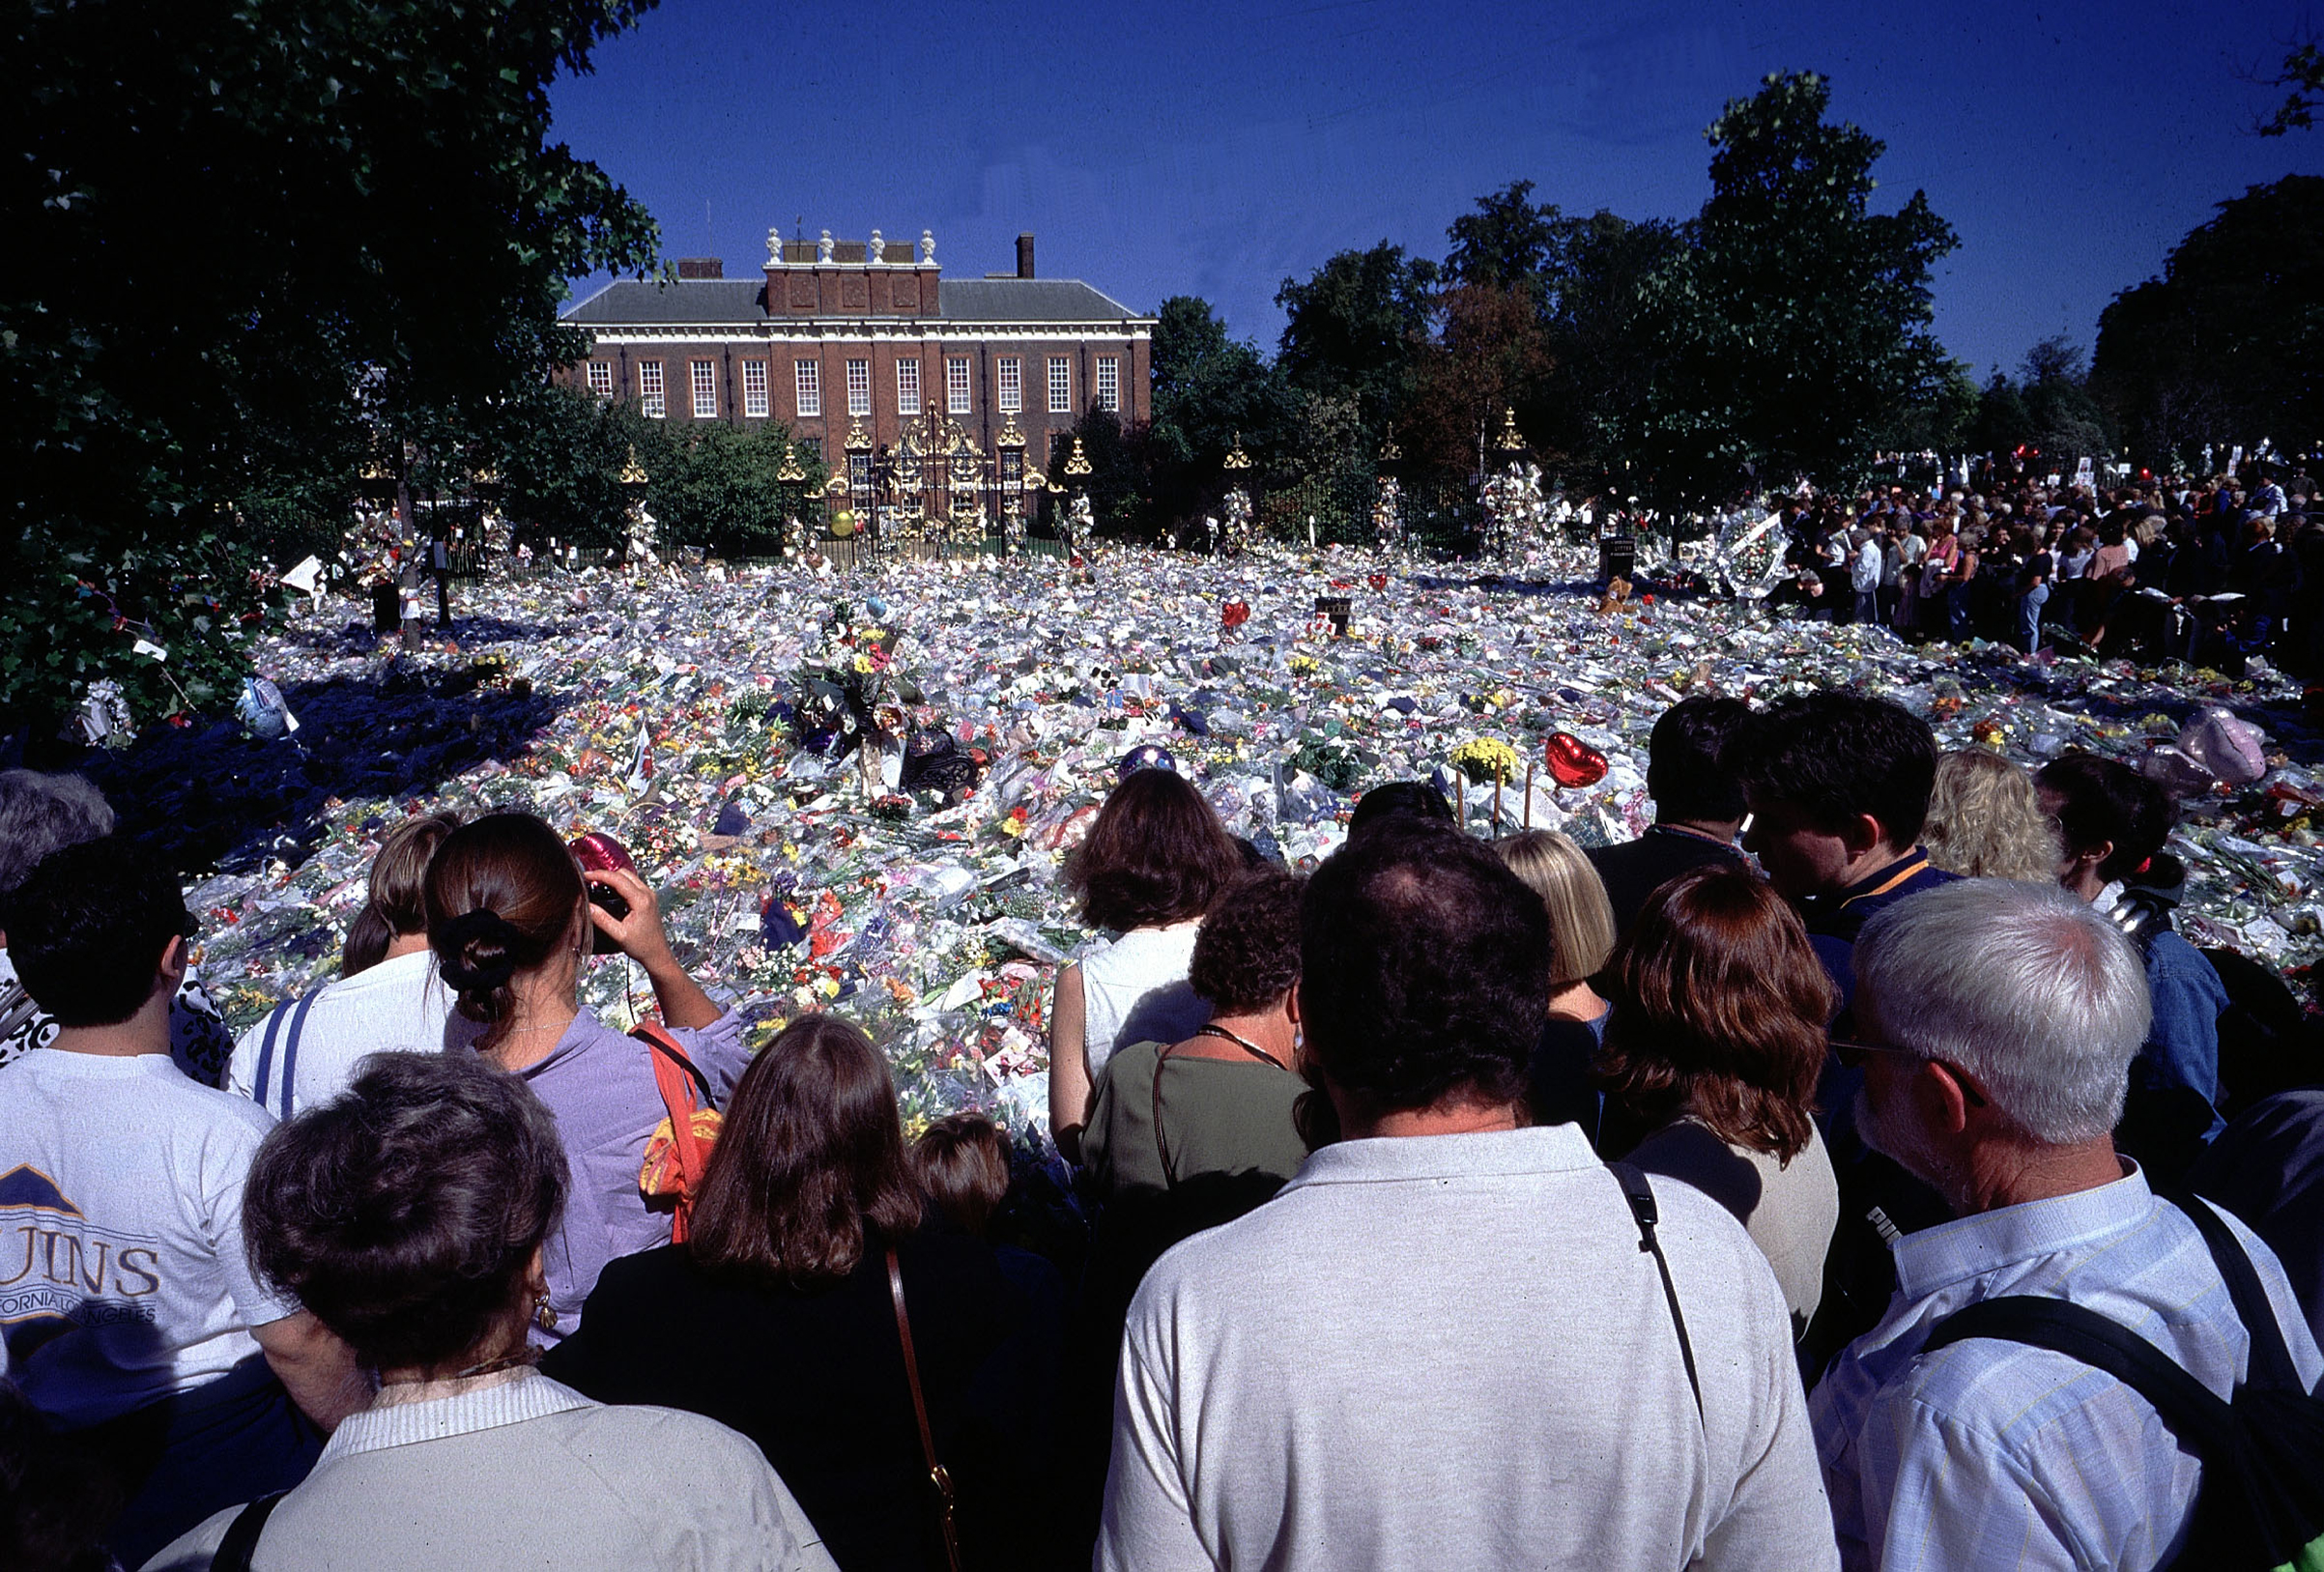 Kensington Palace mourners after the death of Diana, Princess of Wales. Jeff Overs—BBC/Getty Images